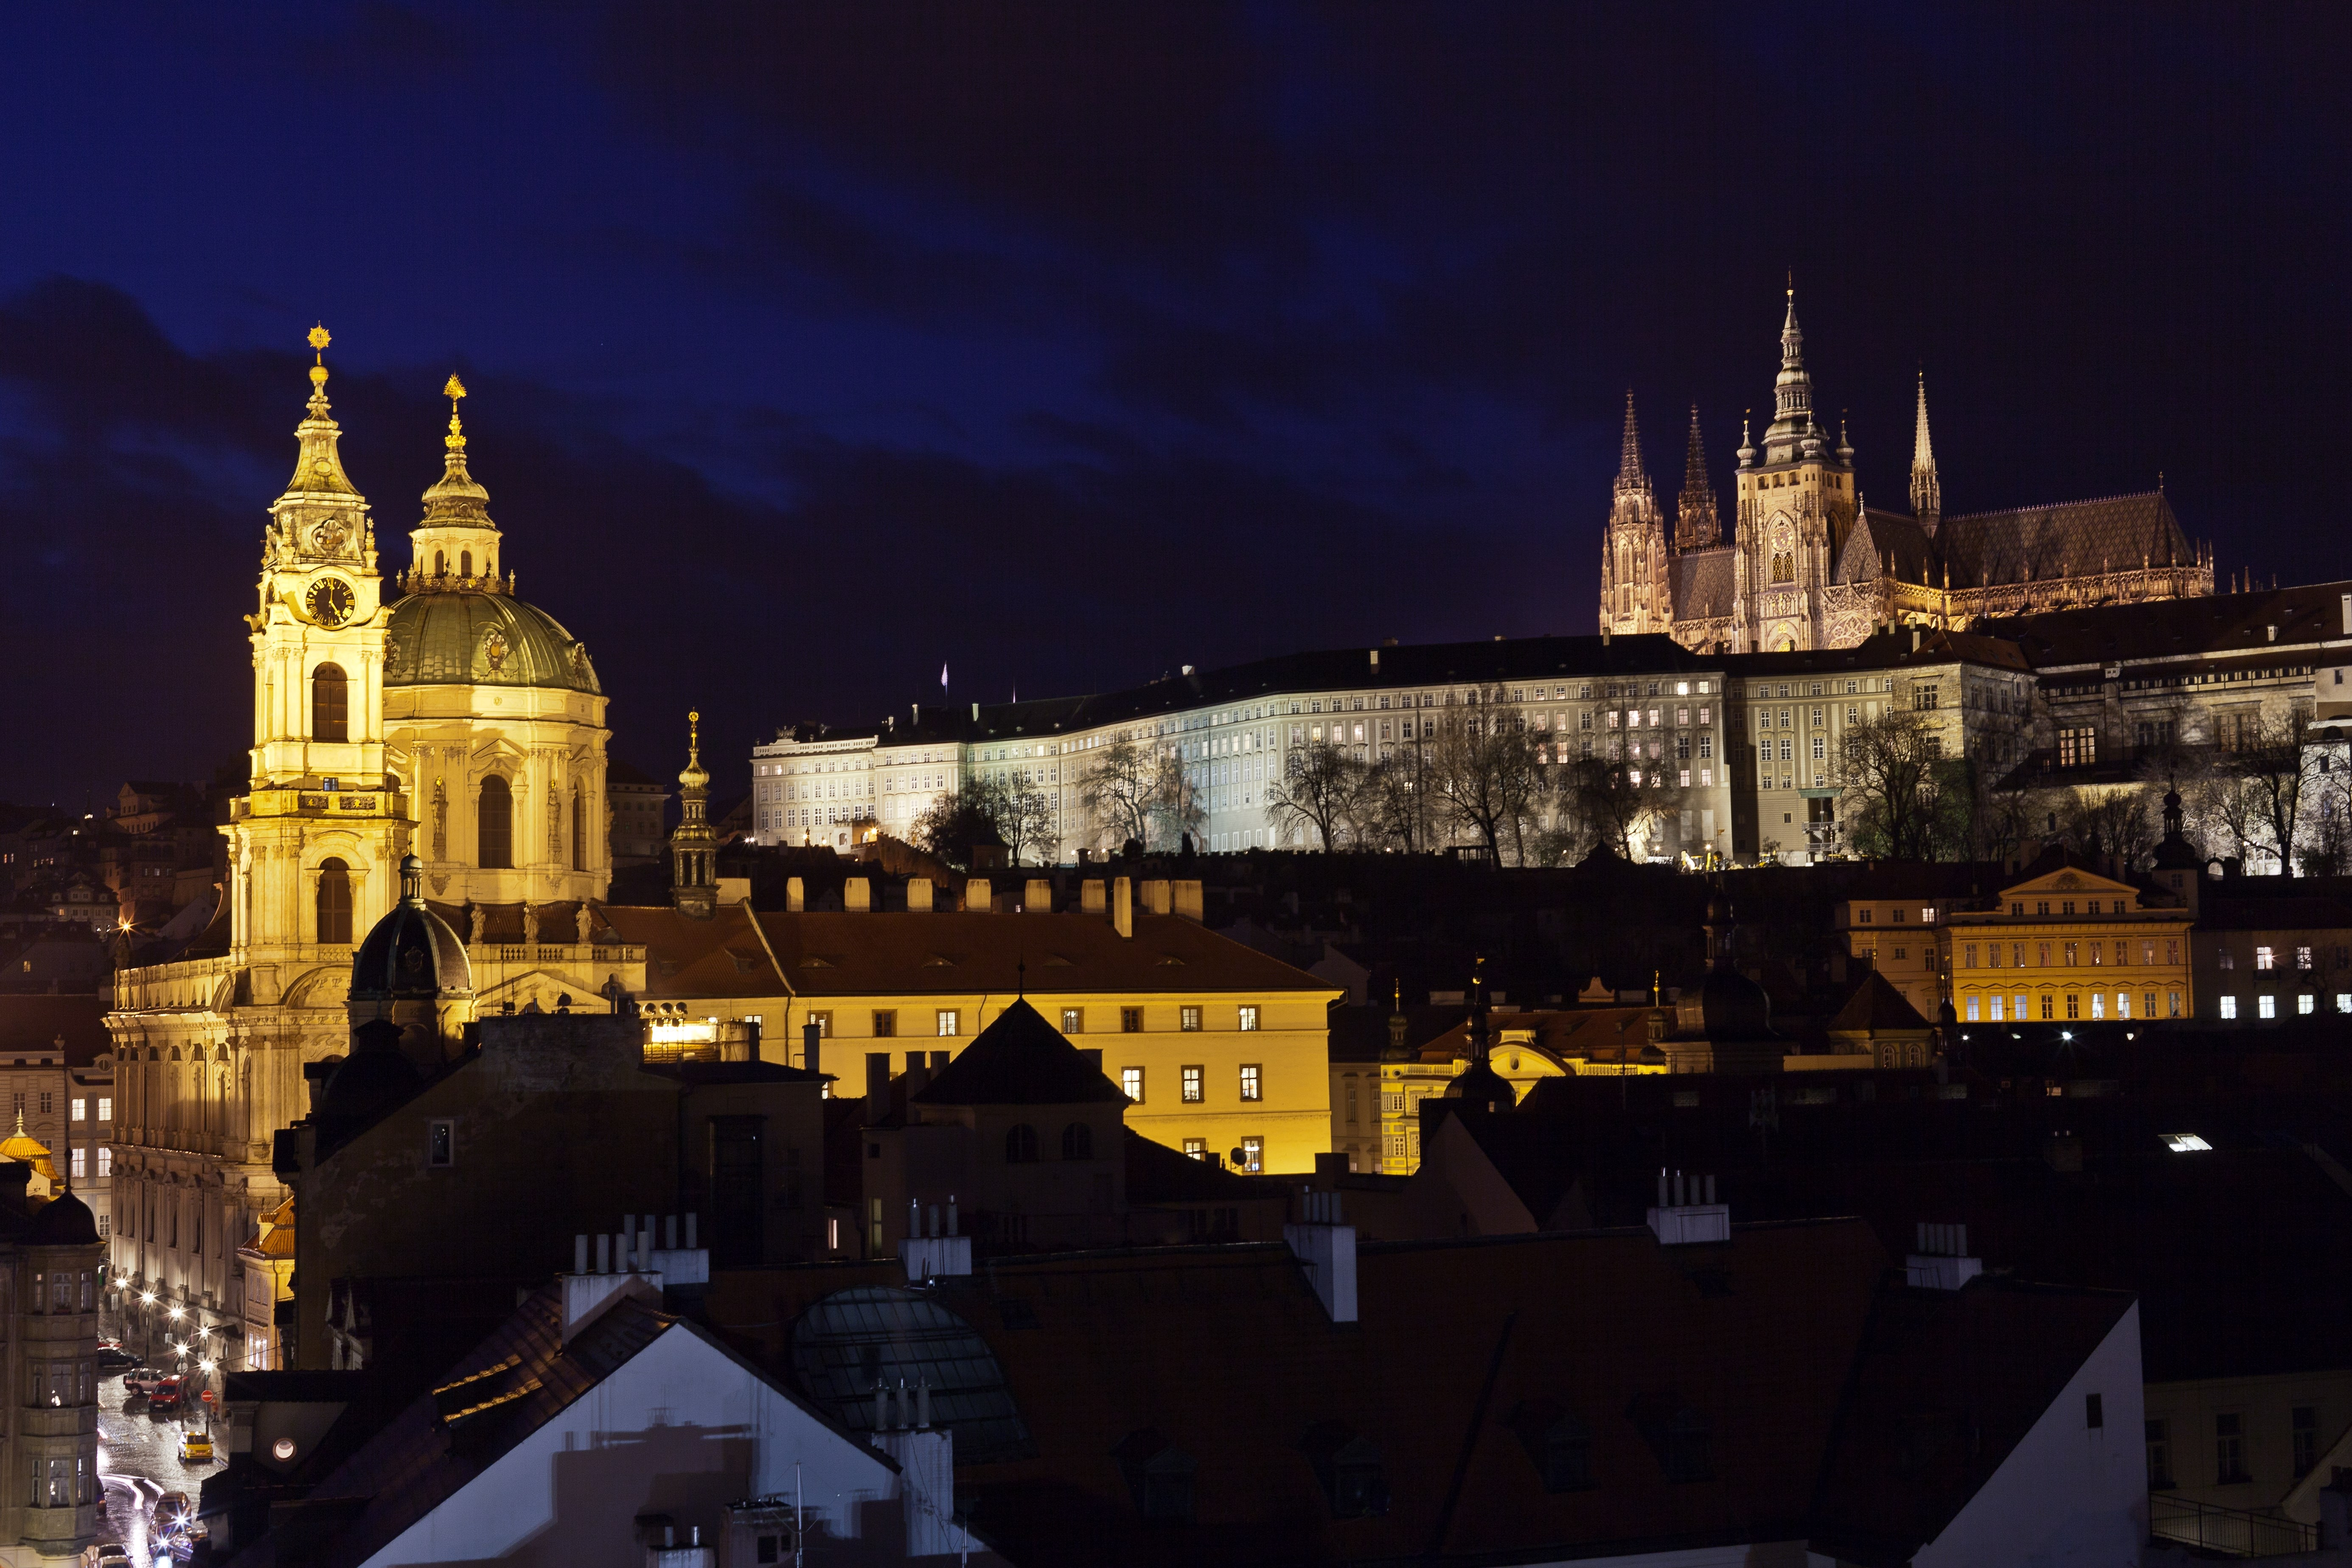 Delta Air Lines and Air Transat will resume its flights from North America to Prague